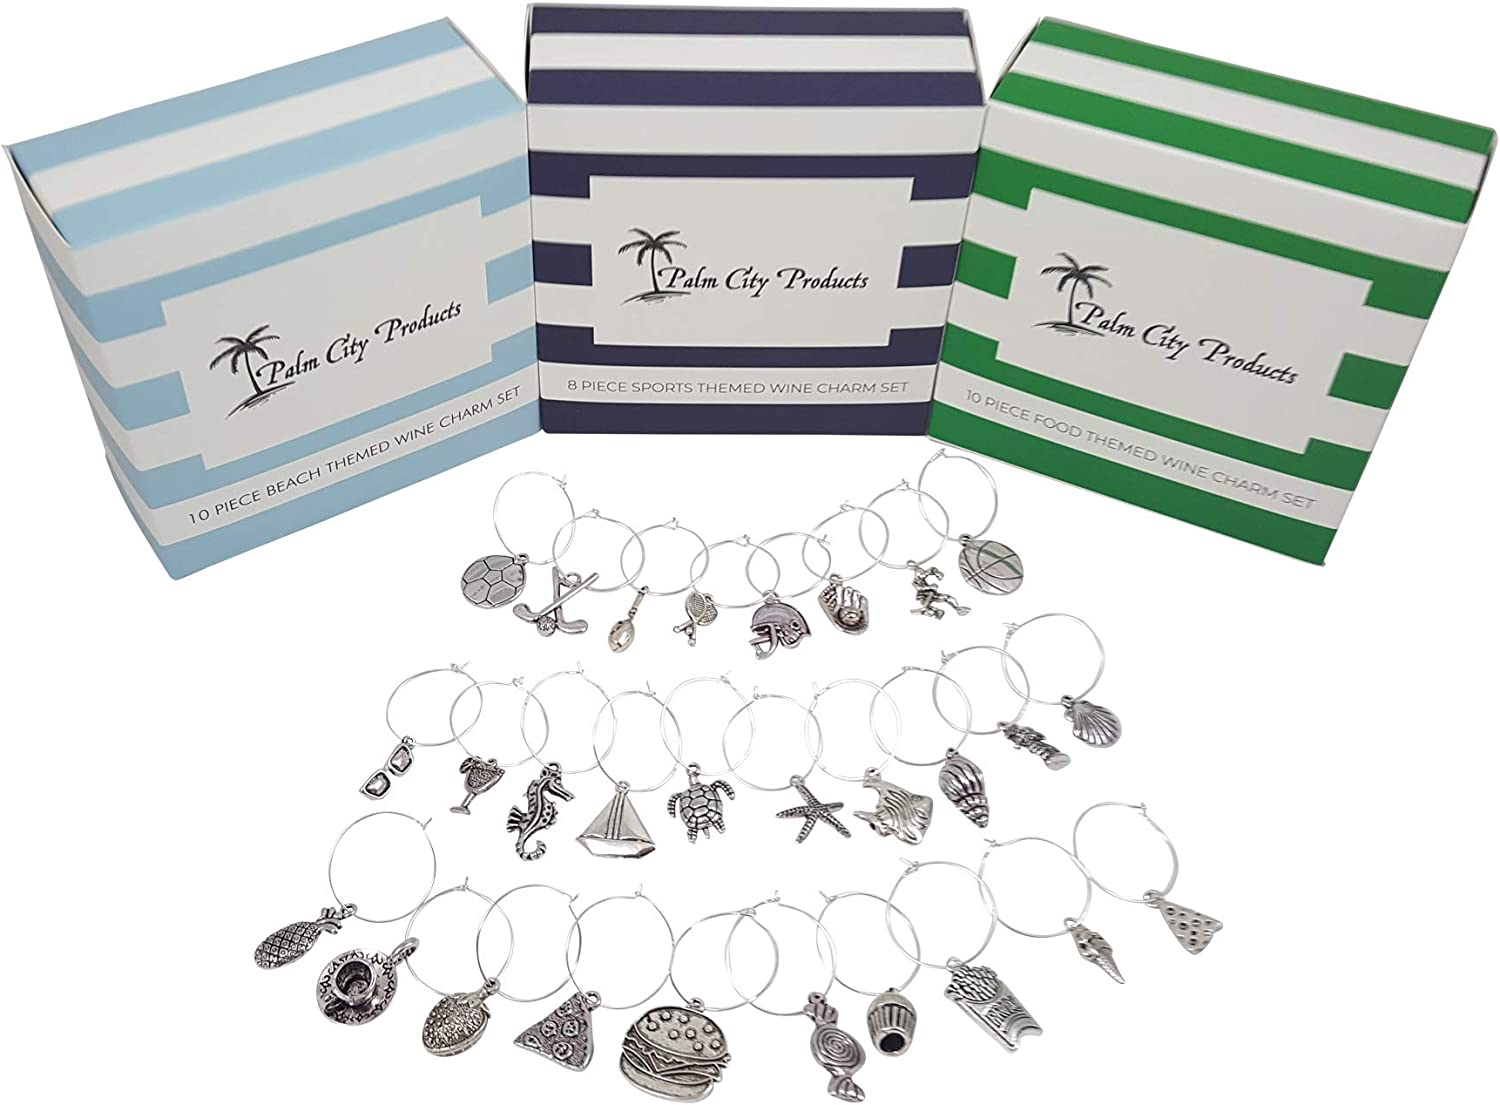 Food and Fun Wine Charm Bundled Minneapolis Mall Gift Spor Set Beach - Don't miss the campaign